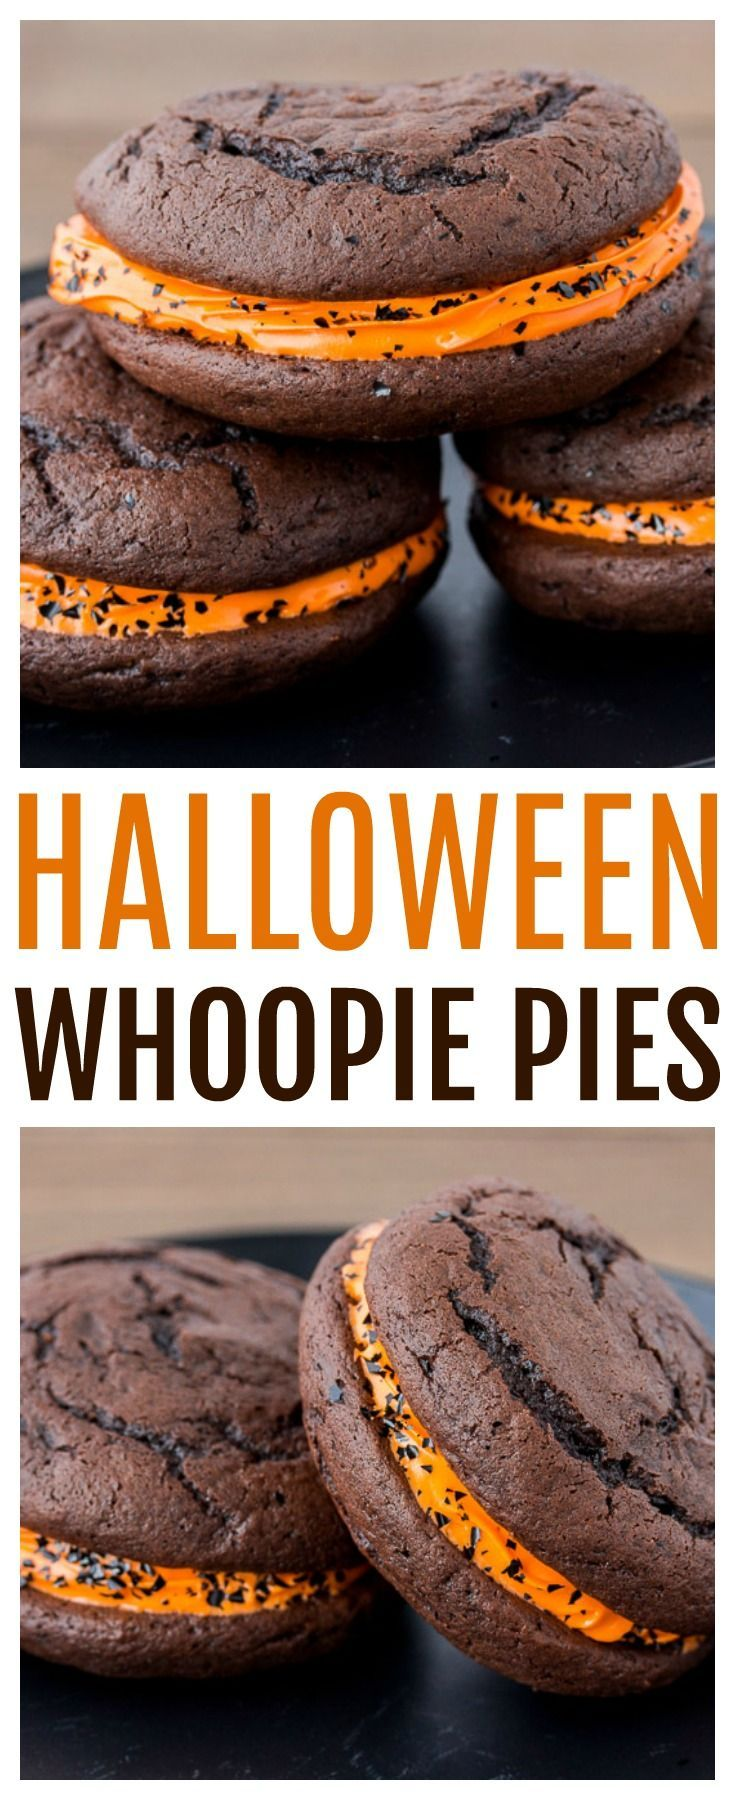 Halloween Whoopie Pies - devils food cake and orange icing make this dessert rec... - Halloween -